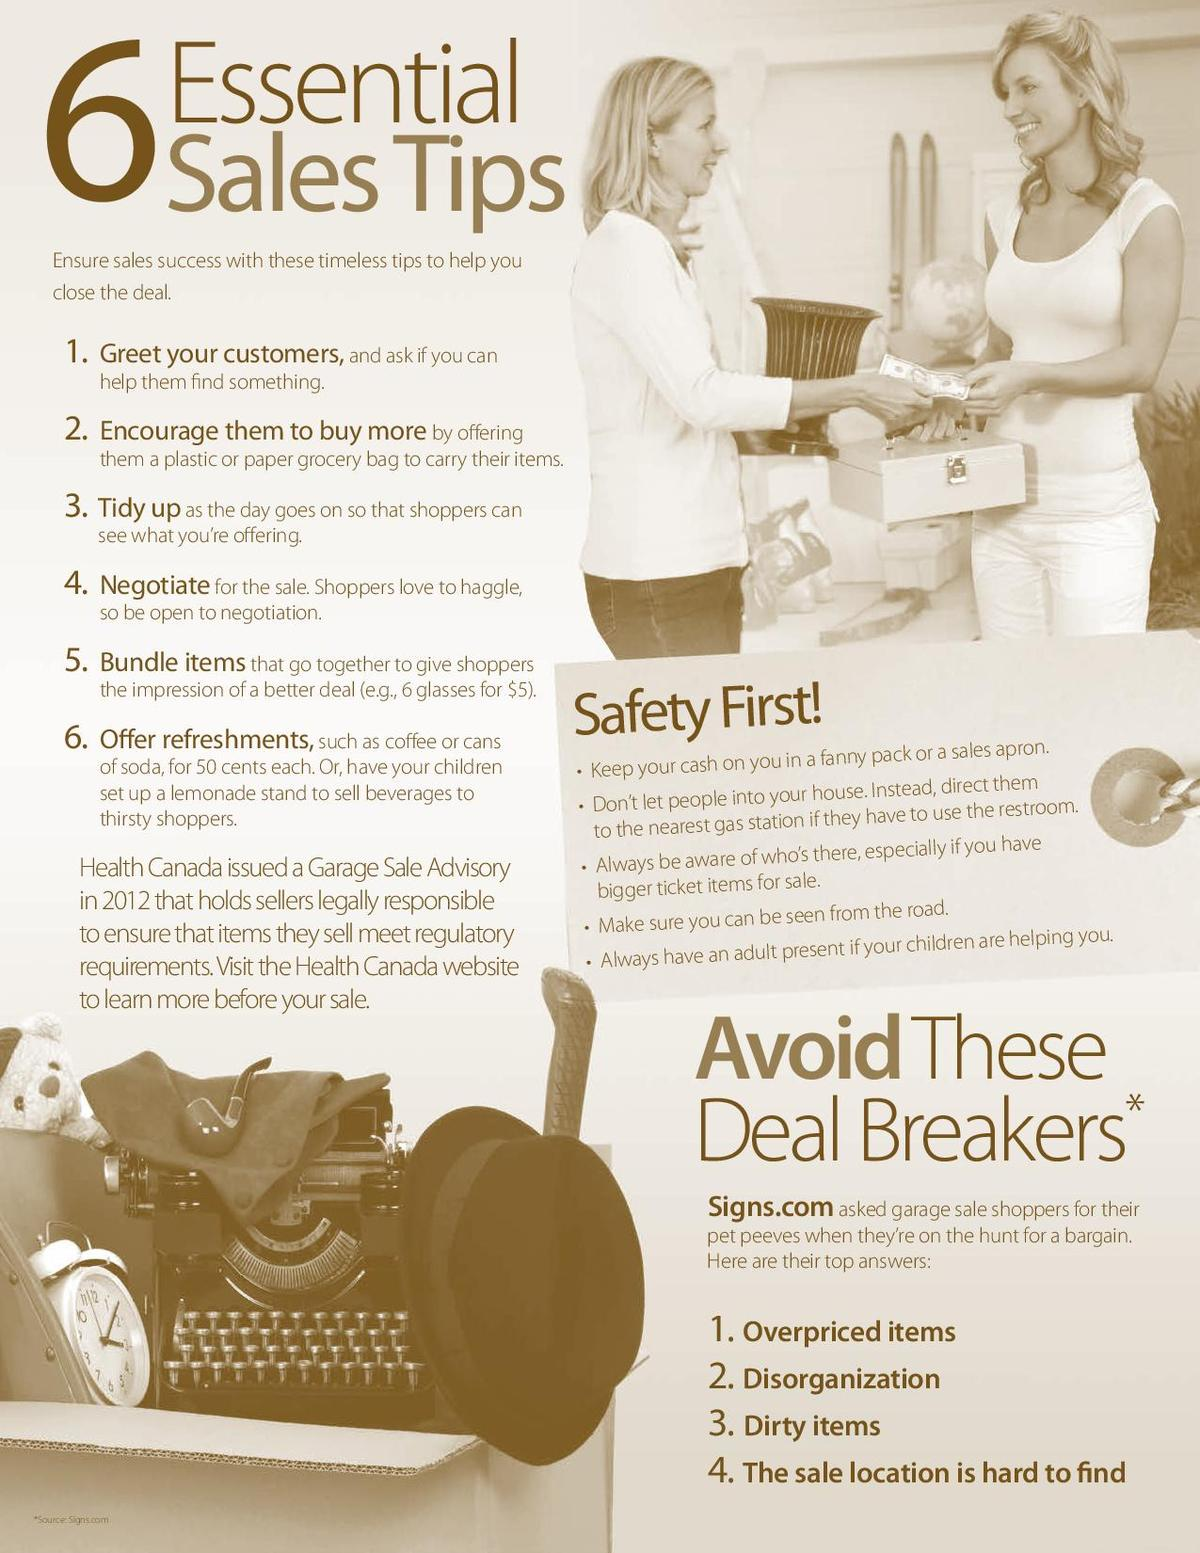 6 Essential Sales Tips